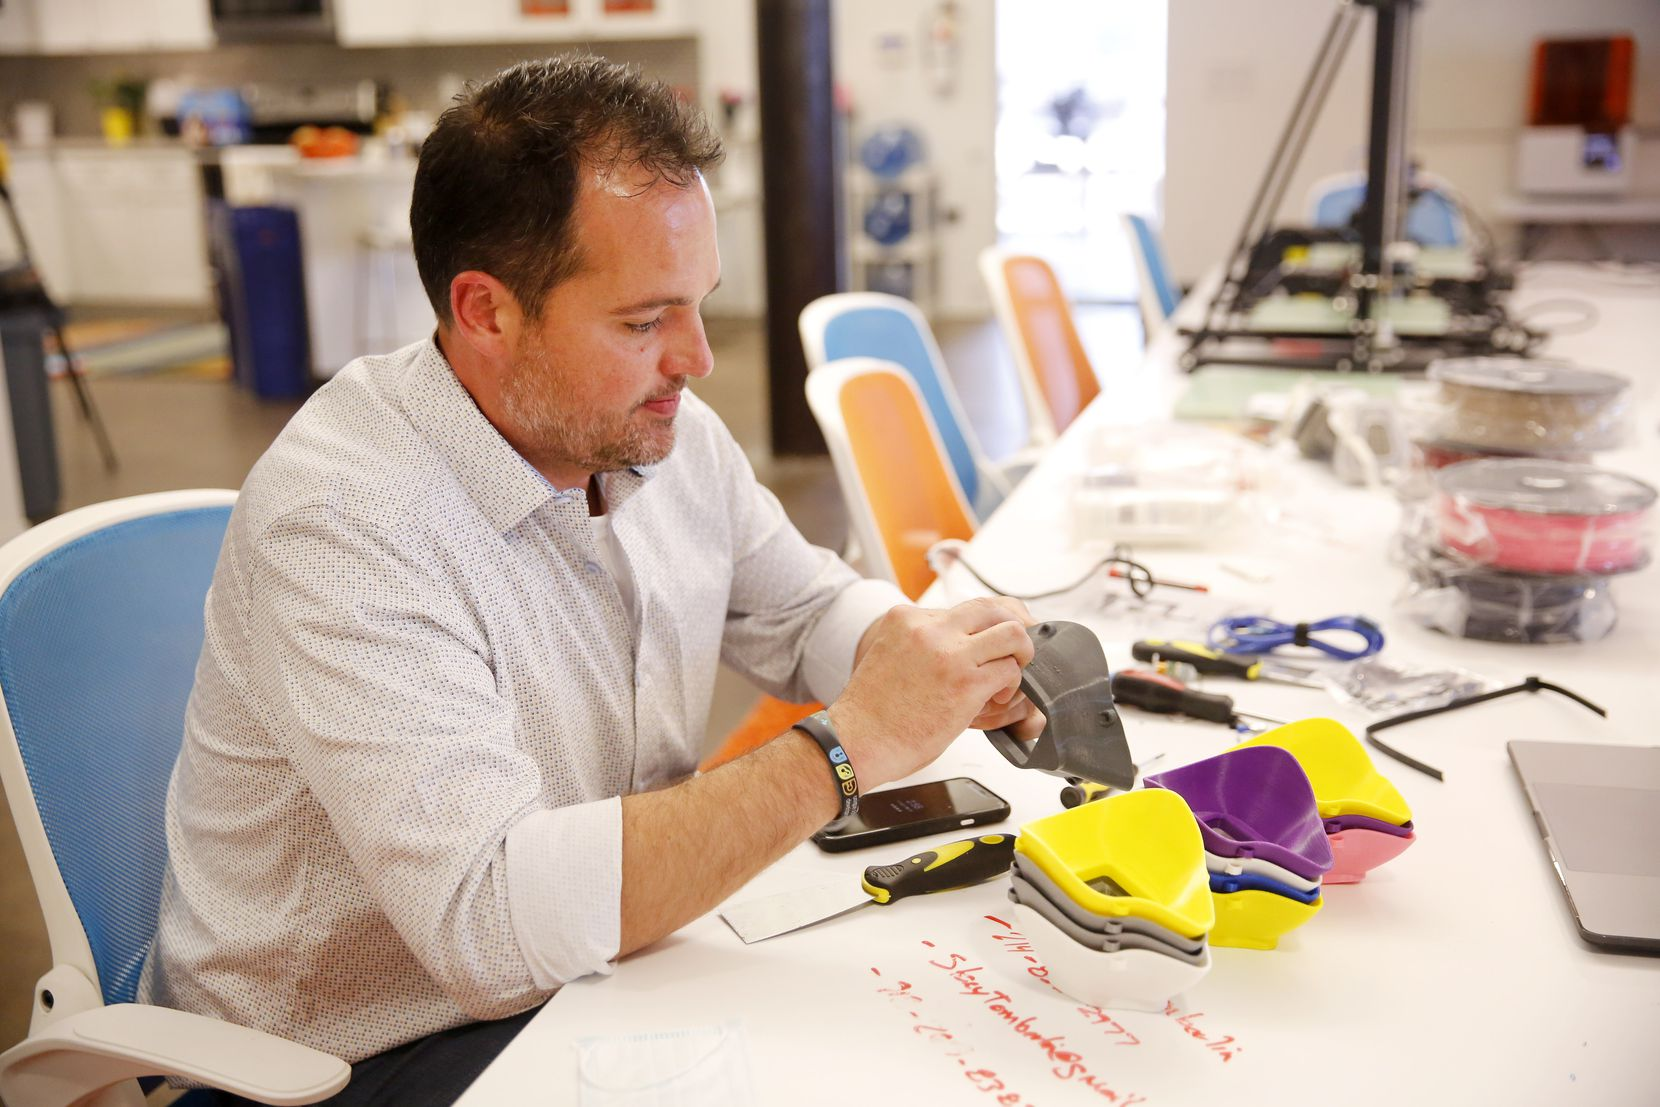 CEO Matt O'Brien sands down a 3-D printed, reusable respiratory mask at Unique Software Development on N. Central Expressway in Dallas, Friday, March 27, 2020.